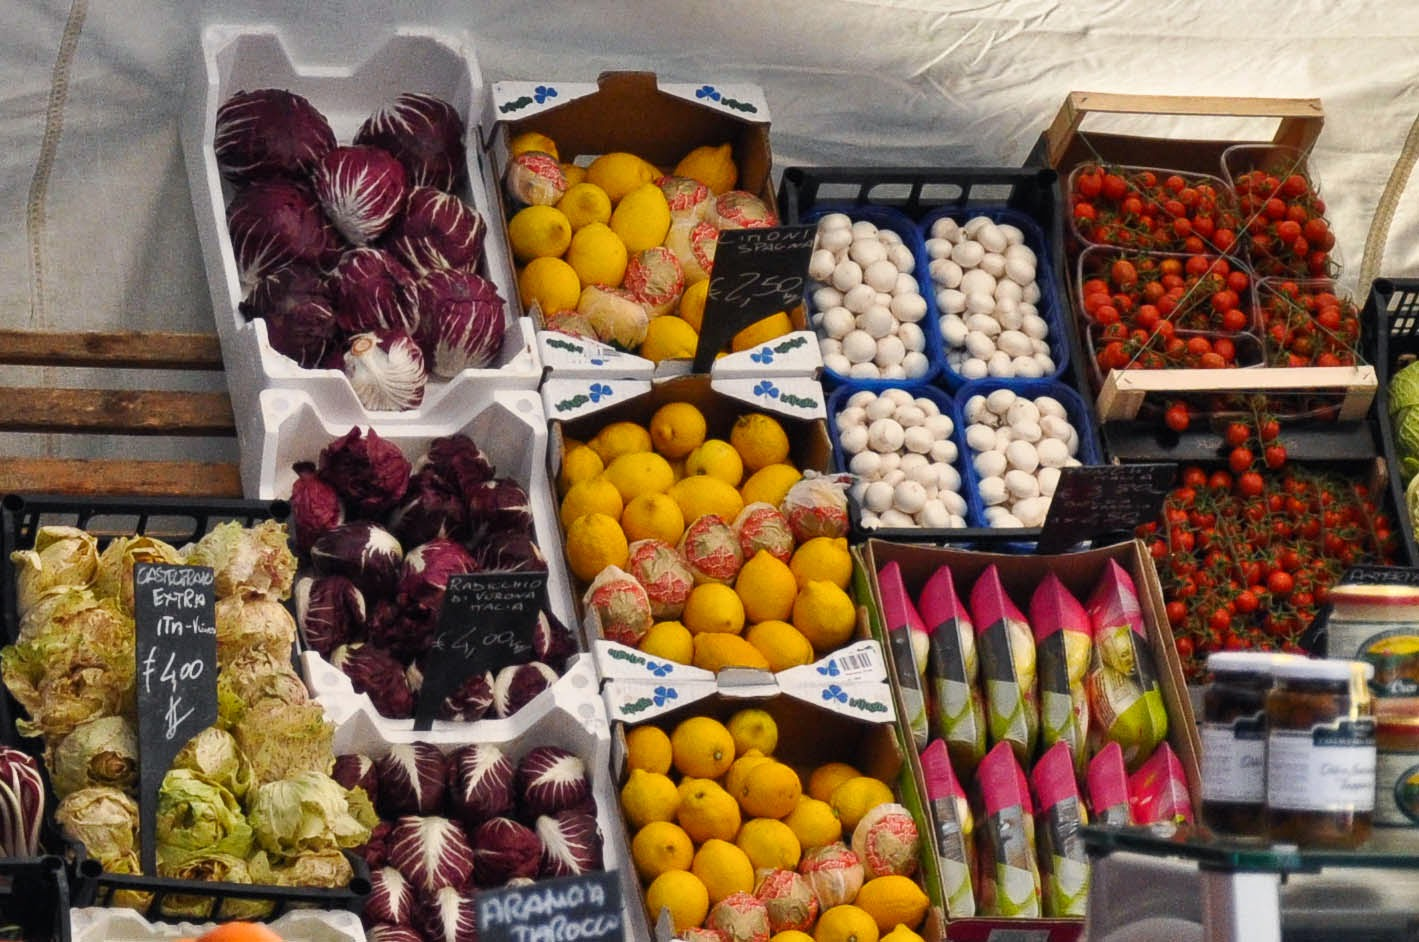 Fruit and veg at the Thursday market in Vicenza, Italy